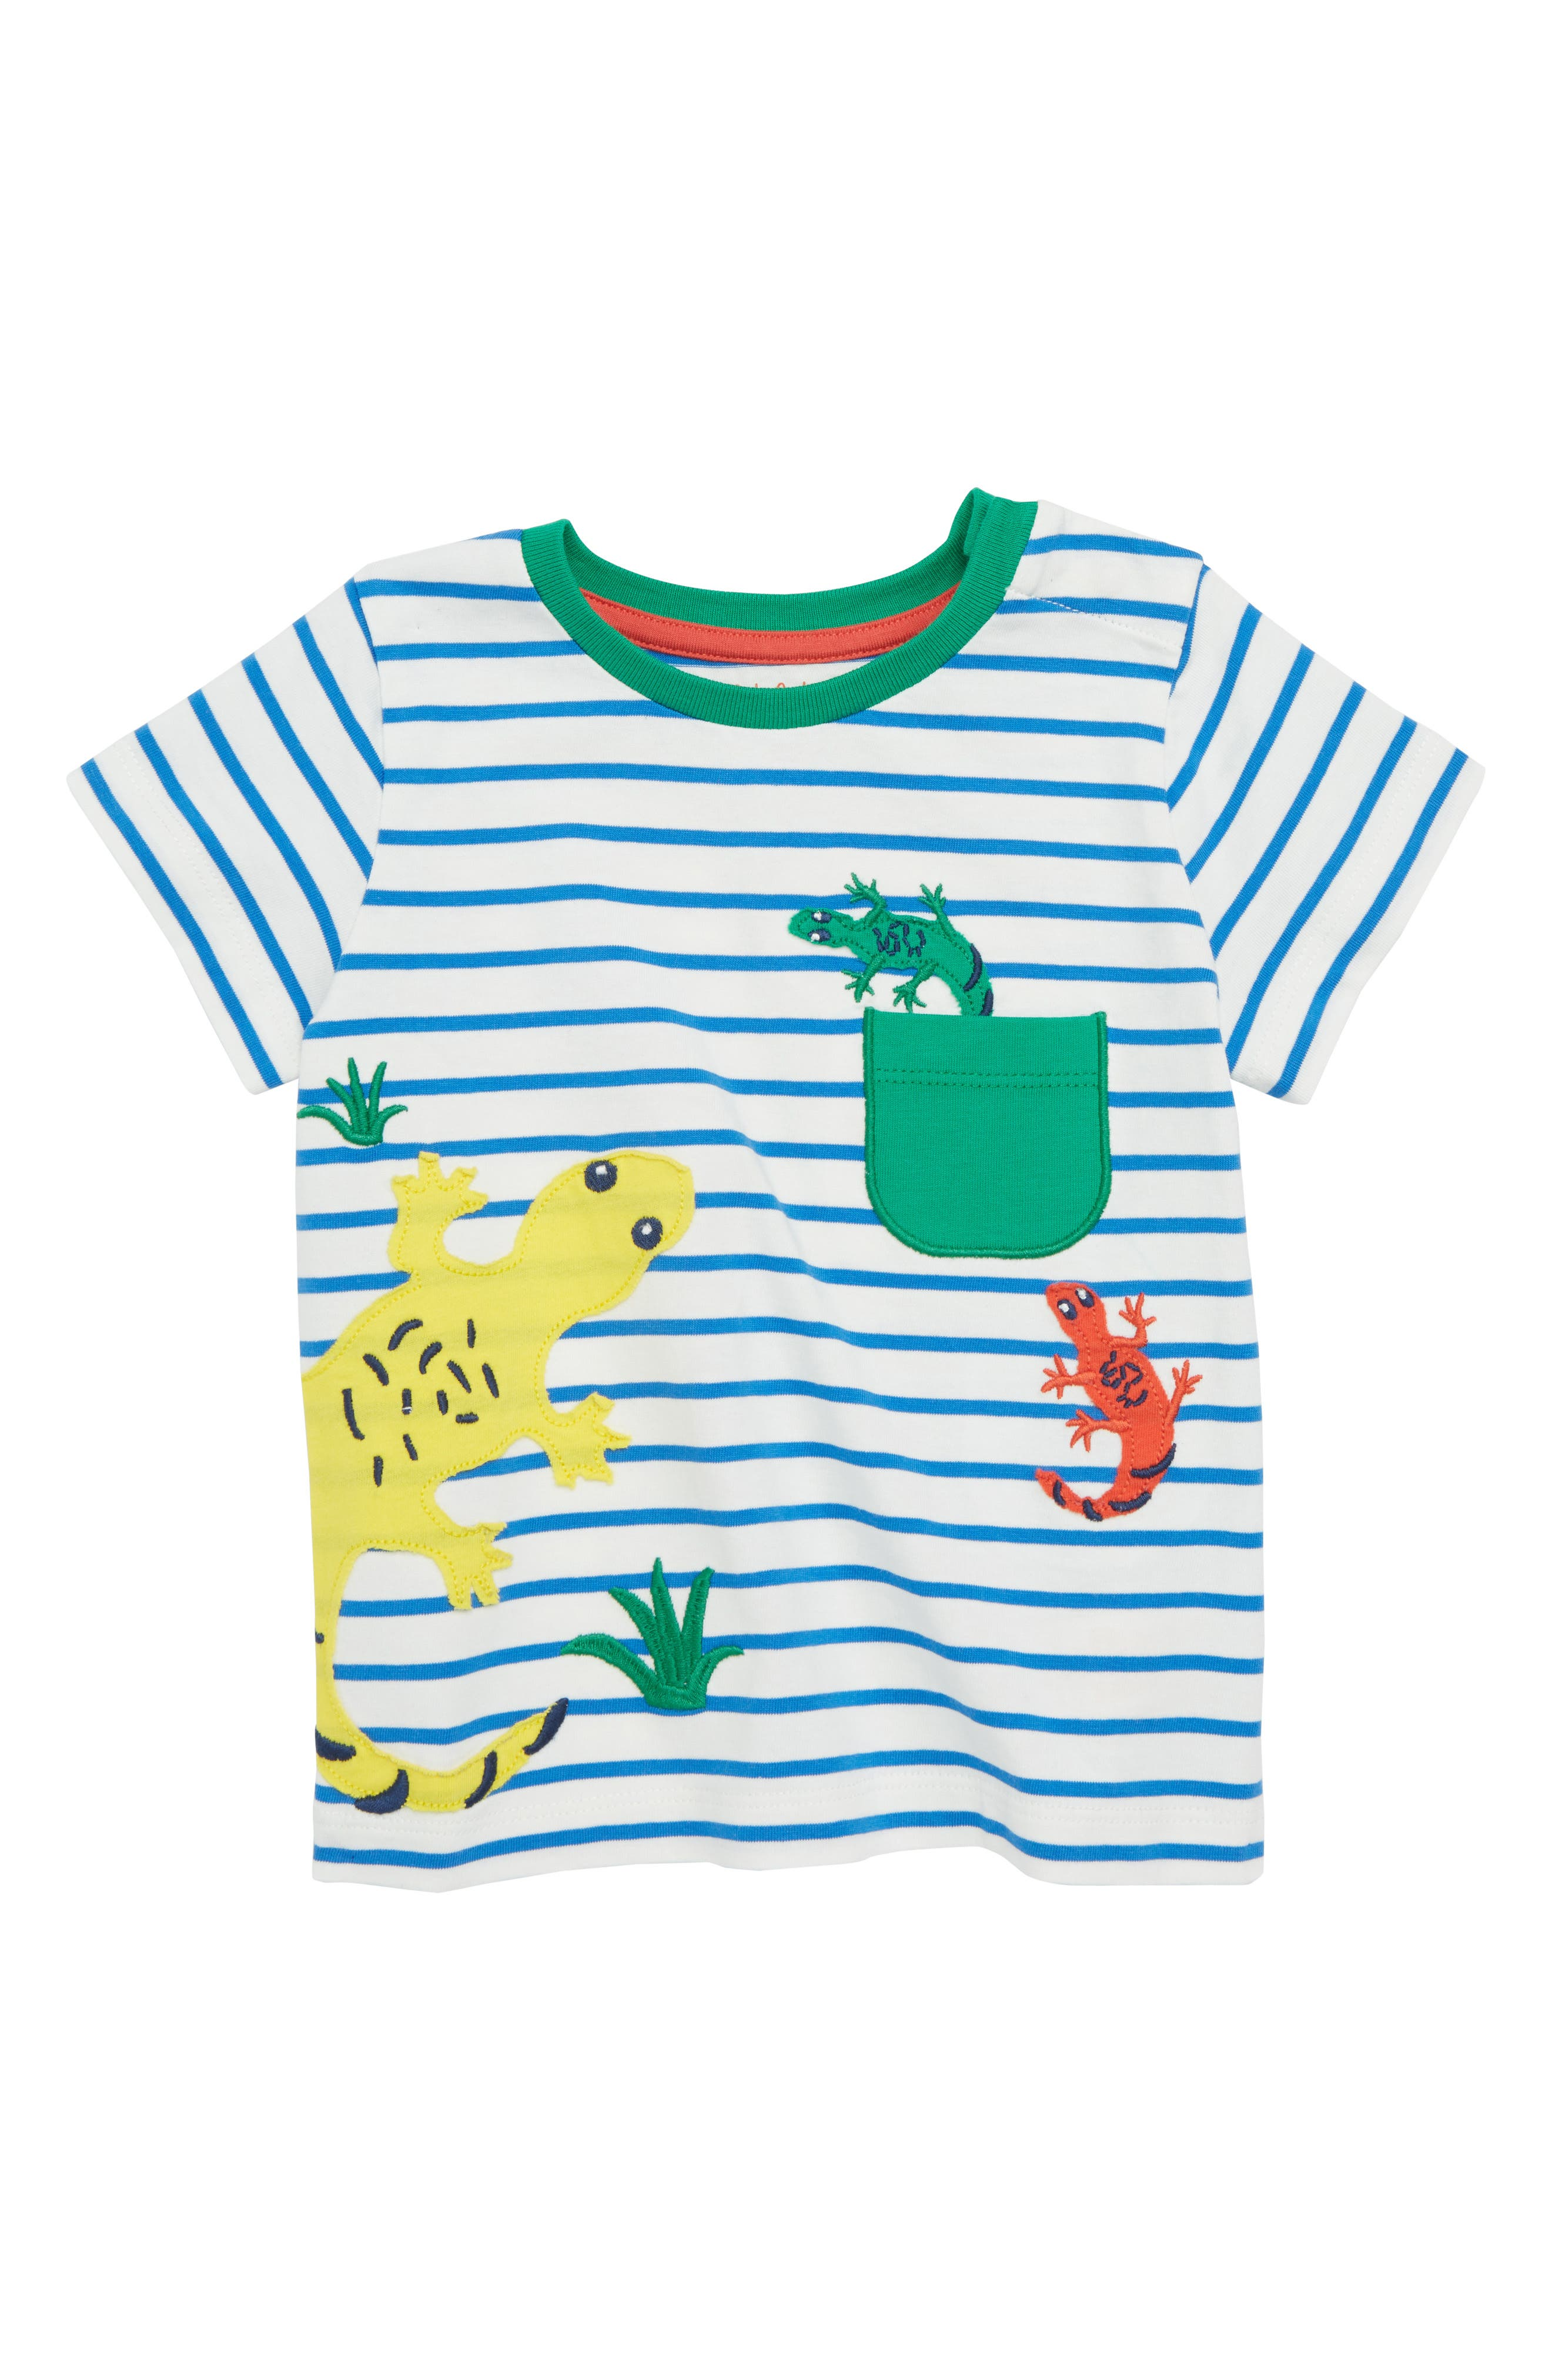 Pocket Friends T-Shirt,                         Main,                         color, Skipper Blue